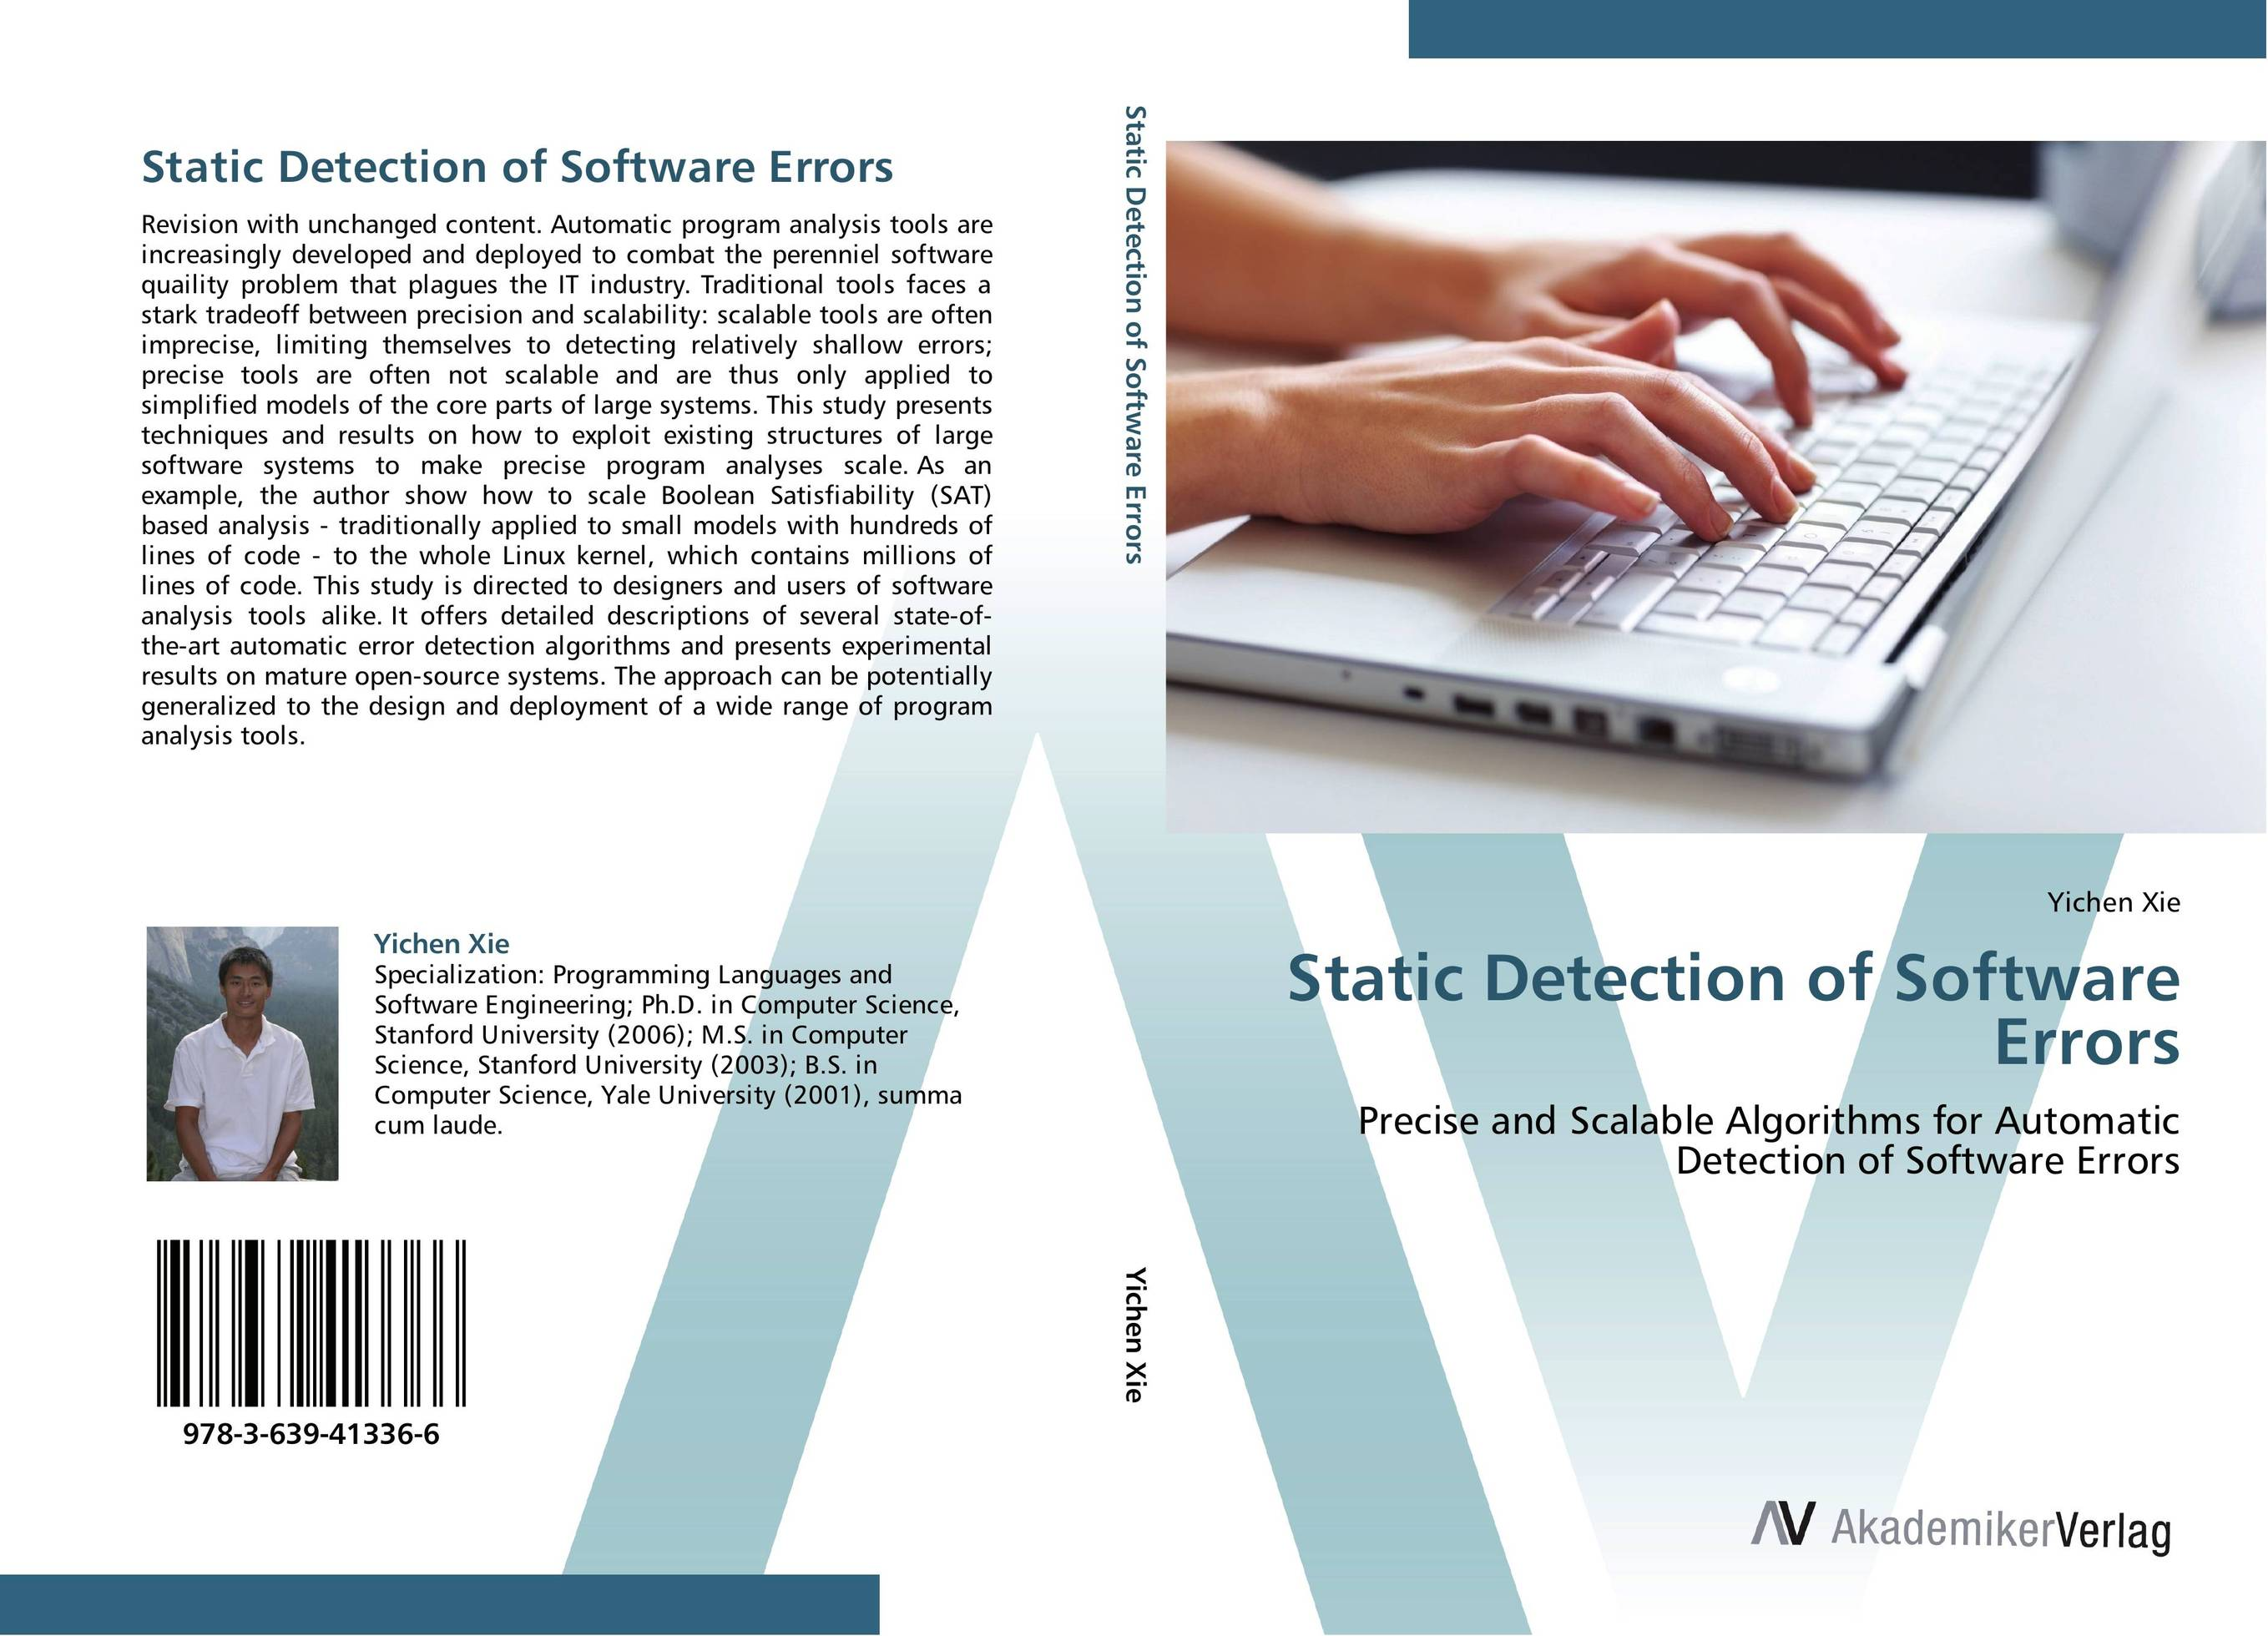 Static Detection of Software Errors dr juan a martinez velasco transient analysis of power systems solution techniques tools and applications